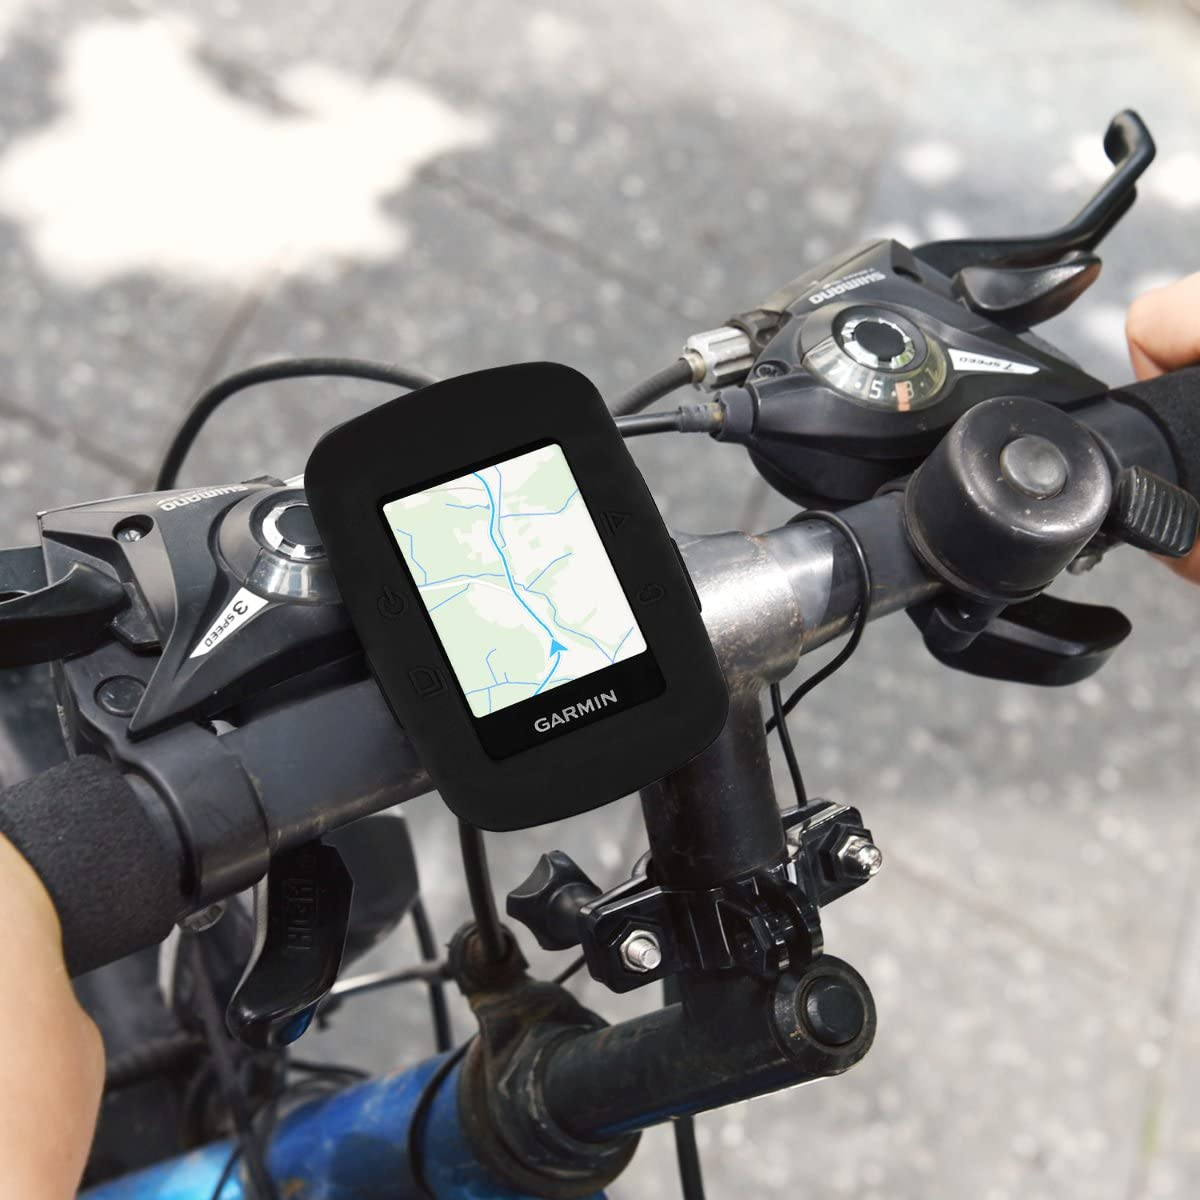 Soft Silicone Bike GPS Navigation System Protective Cover kwmobile Case Compatible with Garmin Edge 200 500